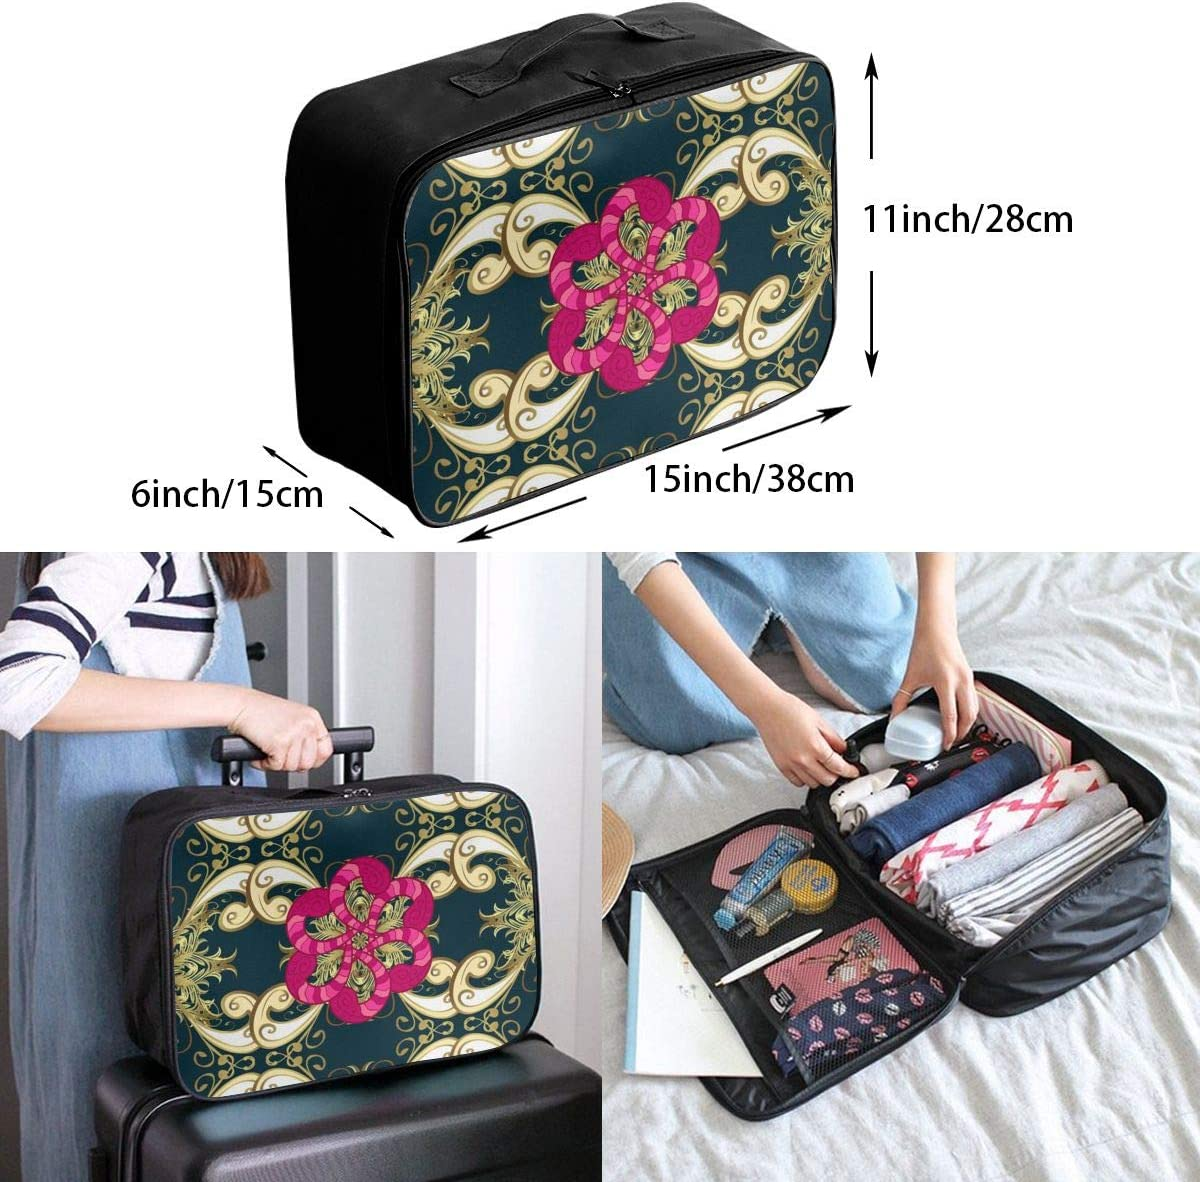 Yunshm Dark Blue Floral Golden And Pink Doodle Elements Personalized Trolley Handbag Waterproof Unisex Large Capacity For Business Travel Storage